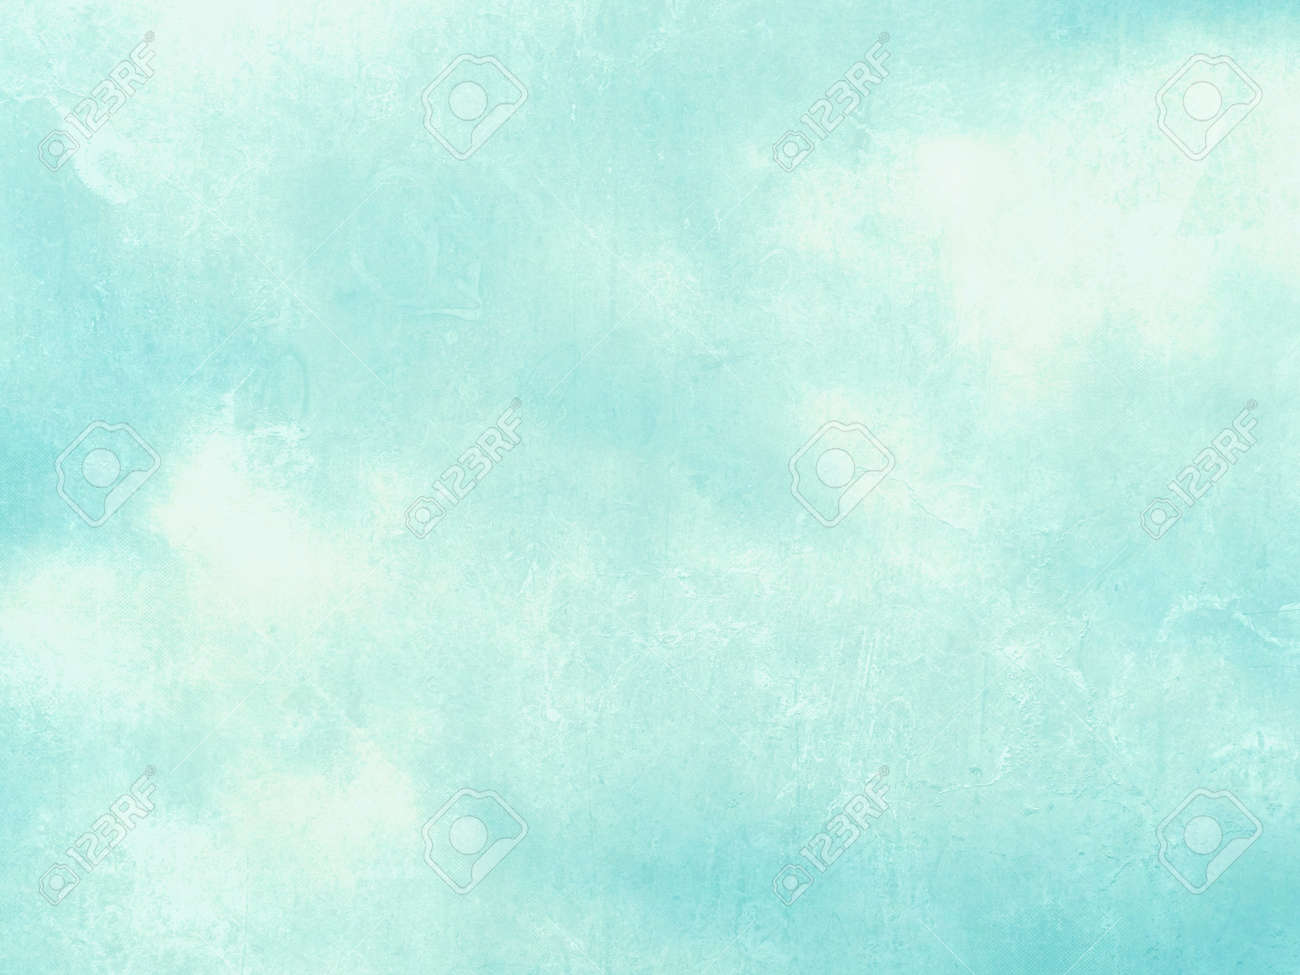 Blue Green Watercolor Background Abstract Pastel Sky Texture